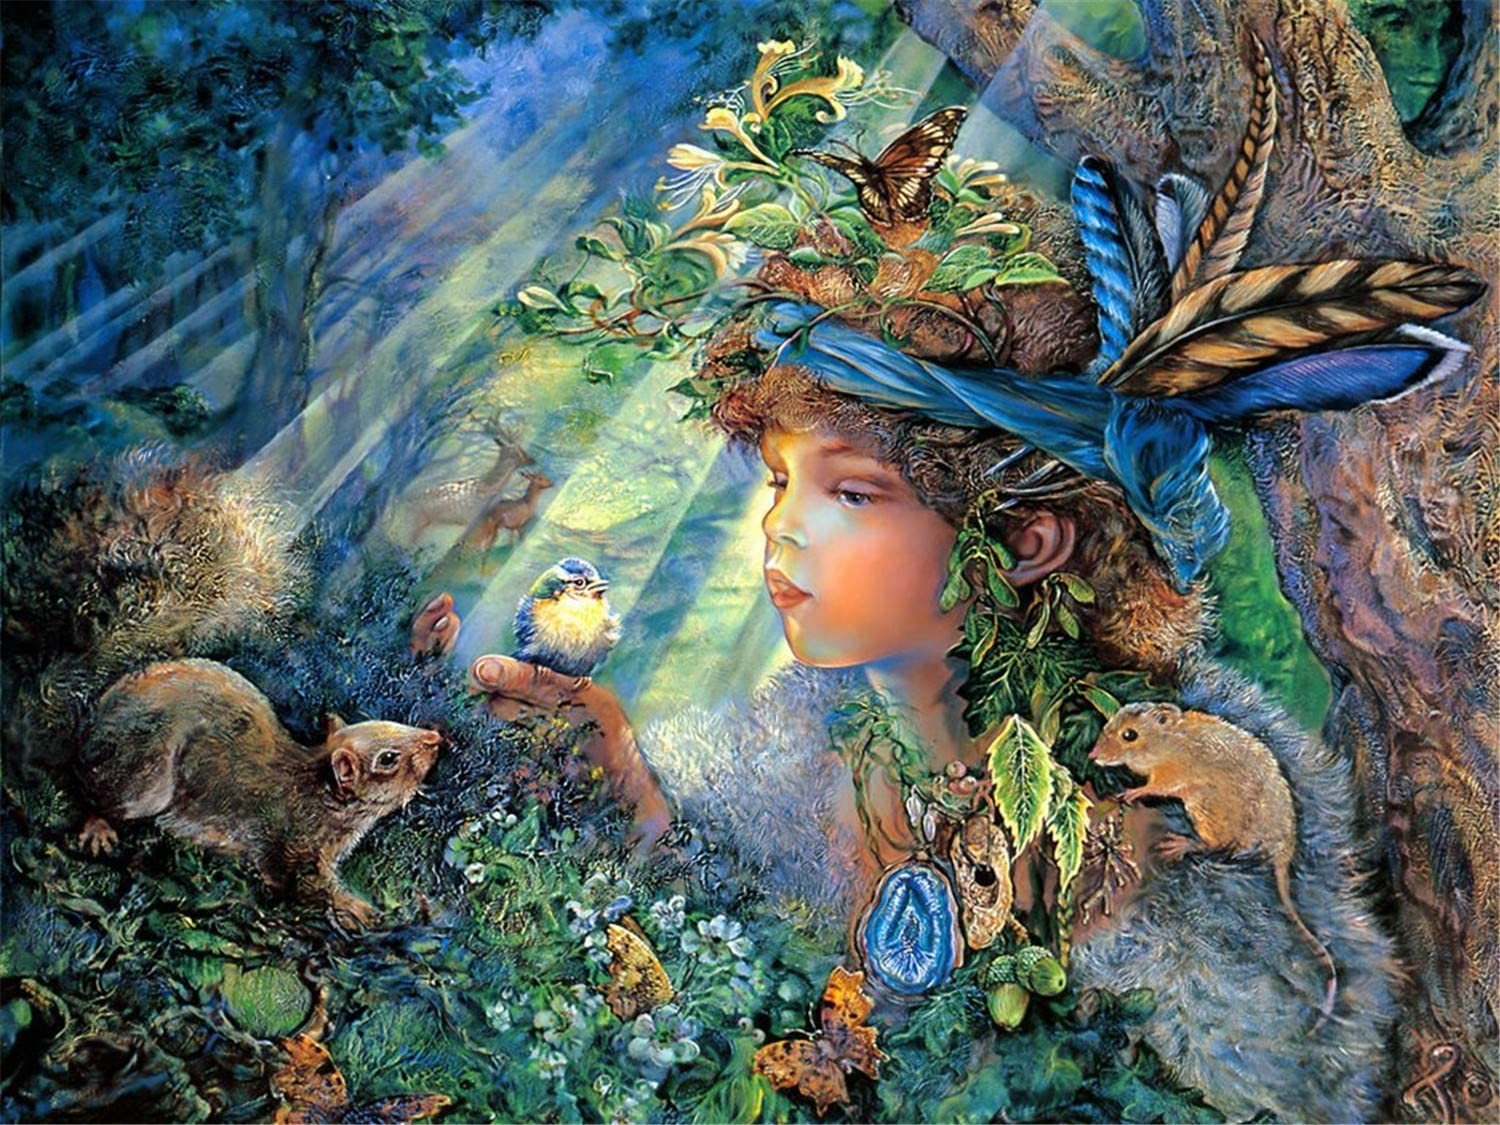 CCXZXF Elf in Forest 1000 Pieces Jigsaw Puzzle for Adults Puzzle Puzzle Intellective Educational Toy Large 27 Inches by 20 Inches Puzzle